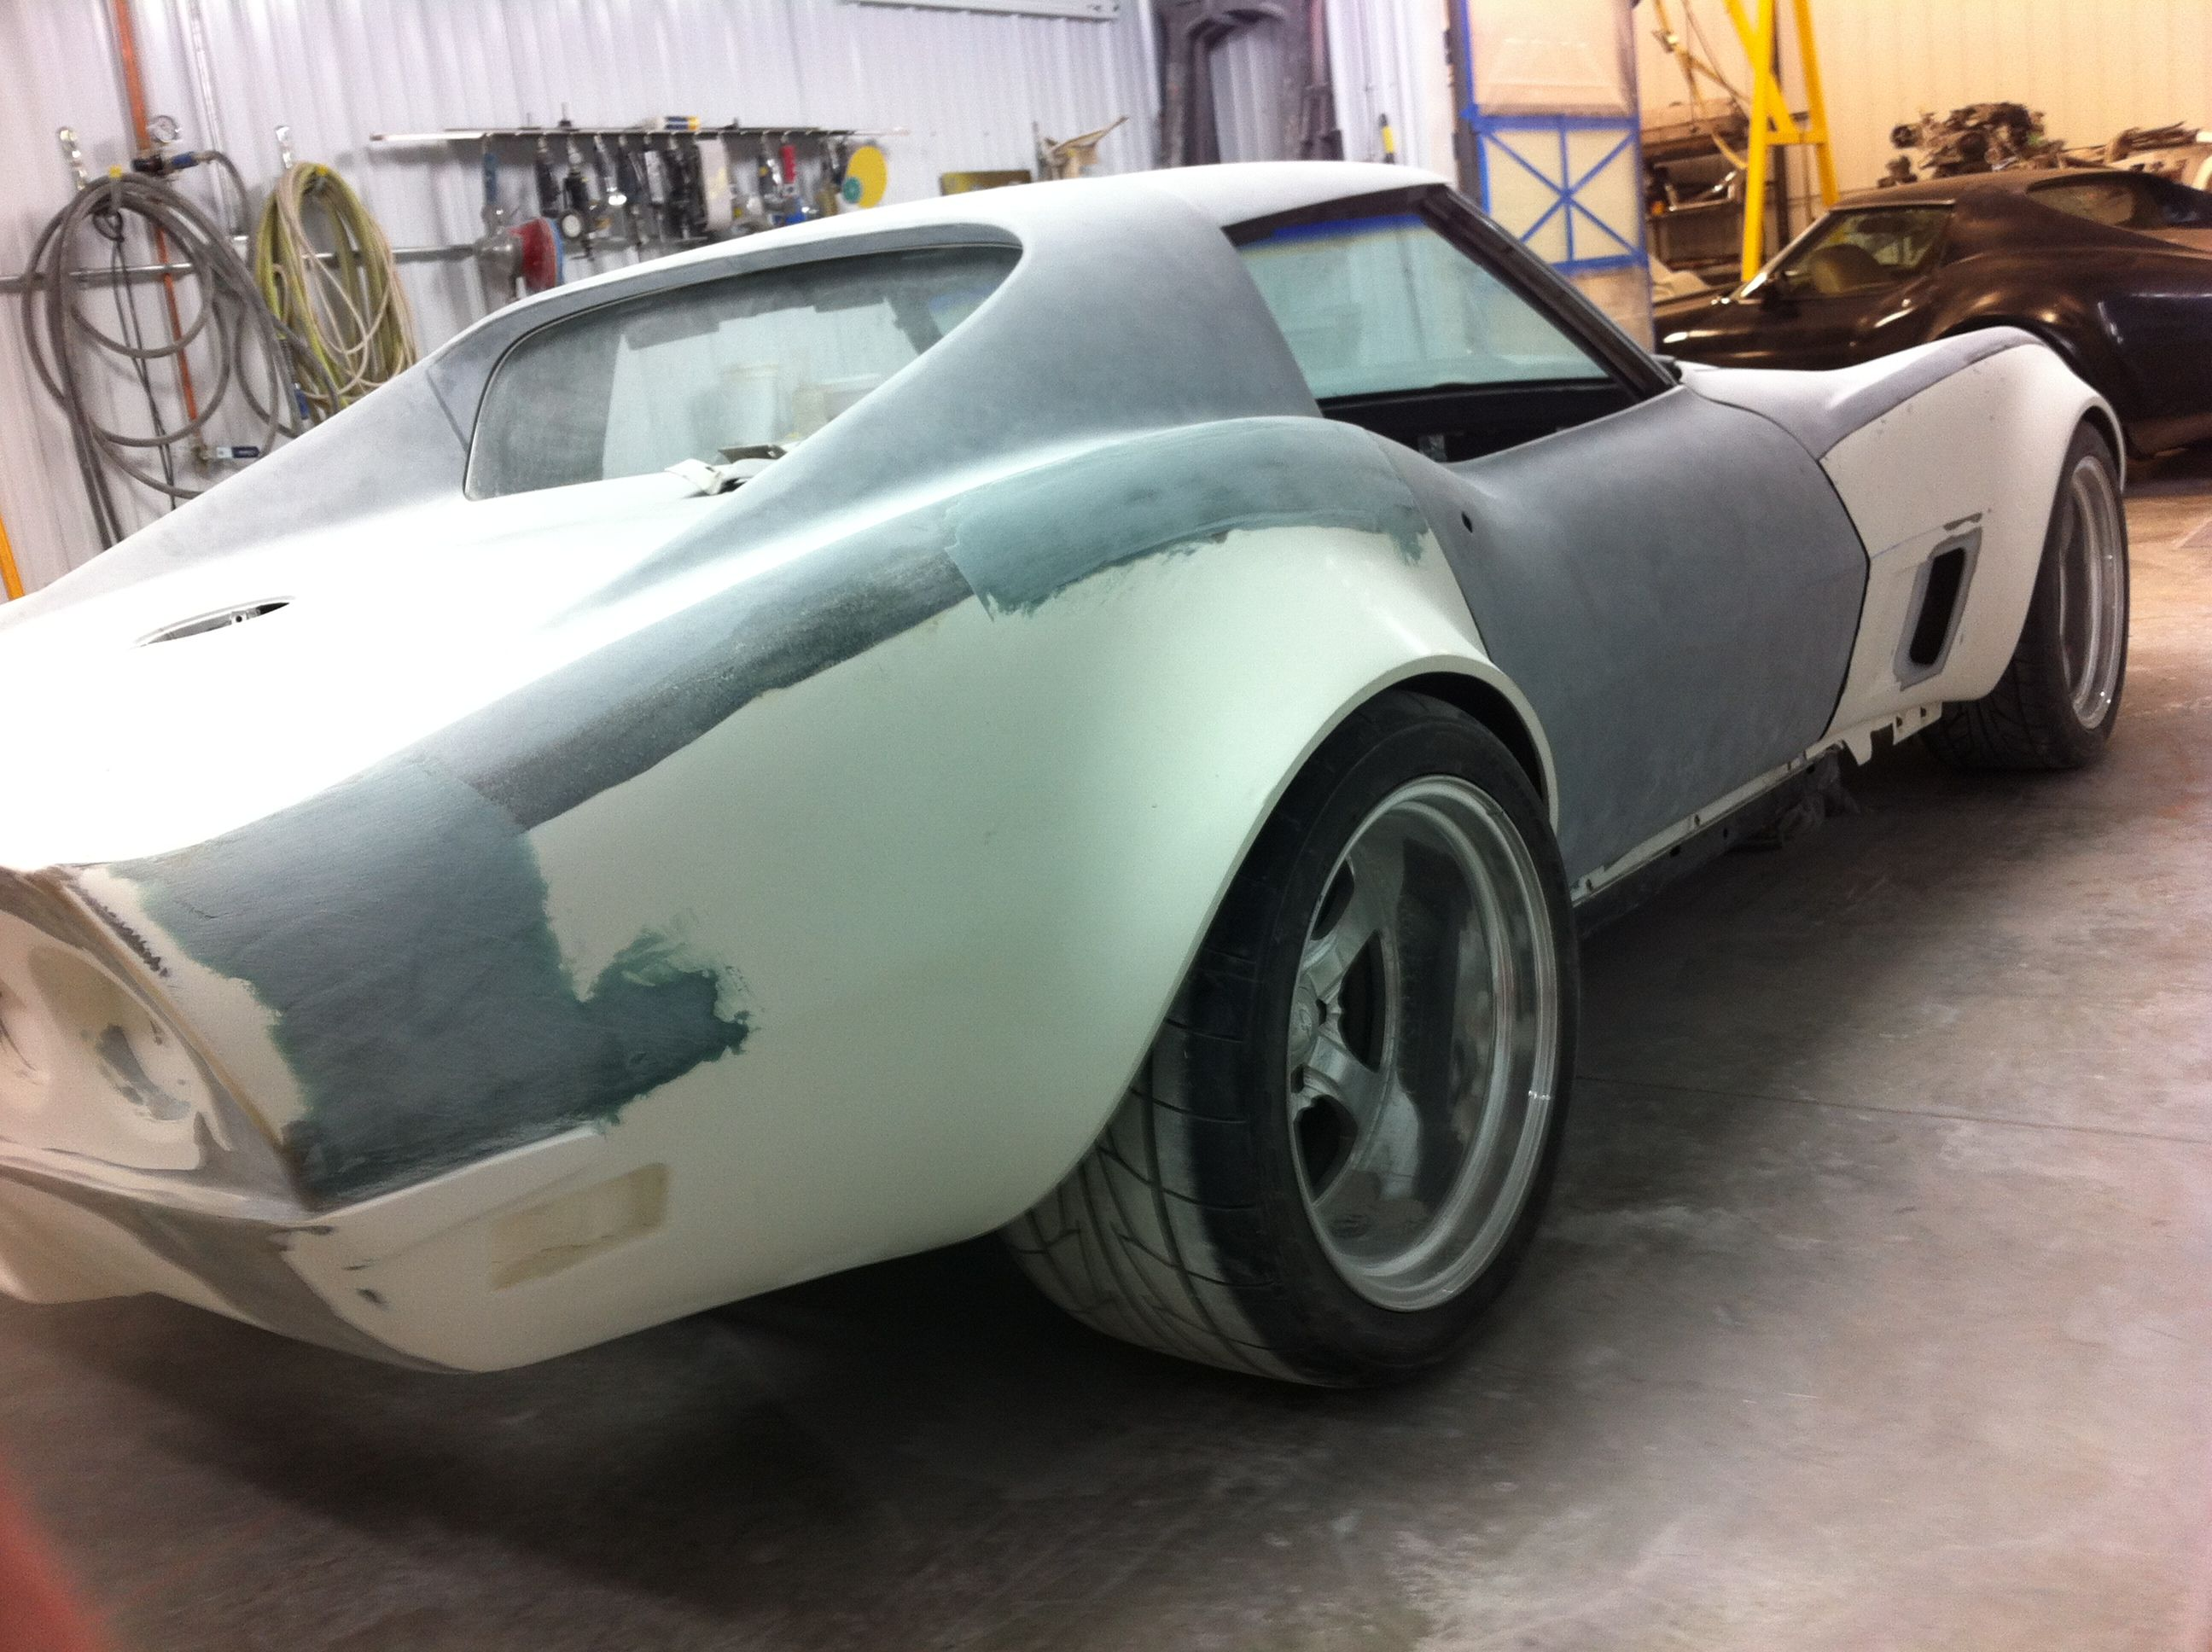 Building A 76 Corvette With Help From Custom Image Corvettes Ls1